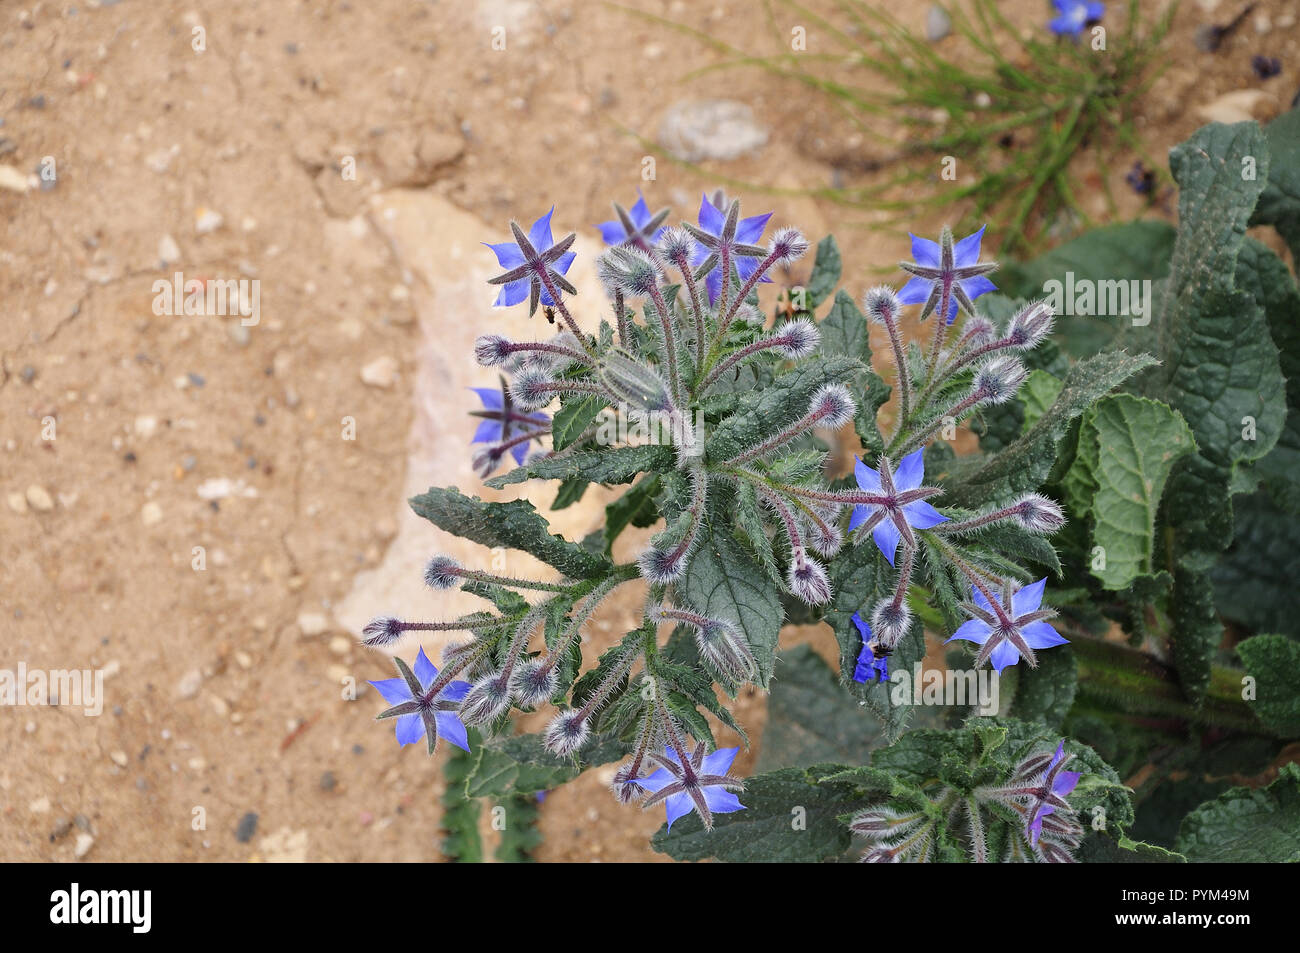 borage shrub seen from above on dry calcareous clay with blue flowers and hairy leaves - Stock Image